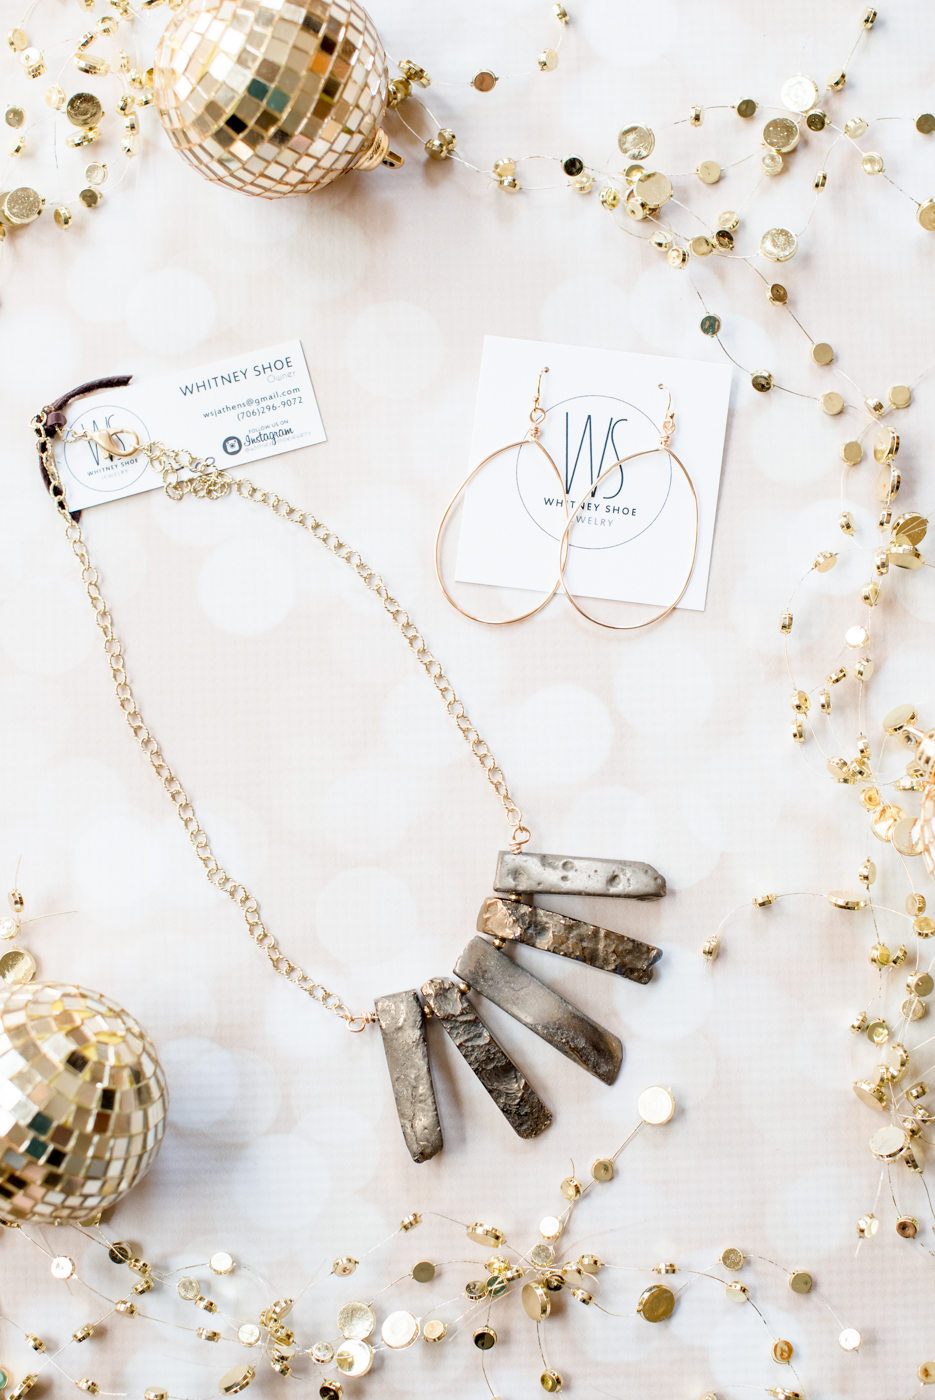 Whitney Shoe Jewelry | Shop Local Holiday Gift Guide | Athens, GA | @missmollymoon